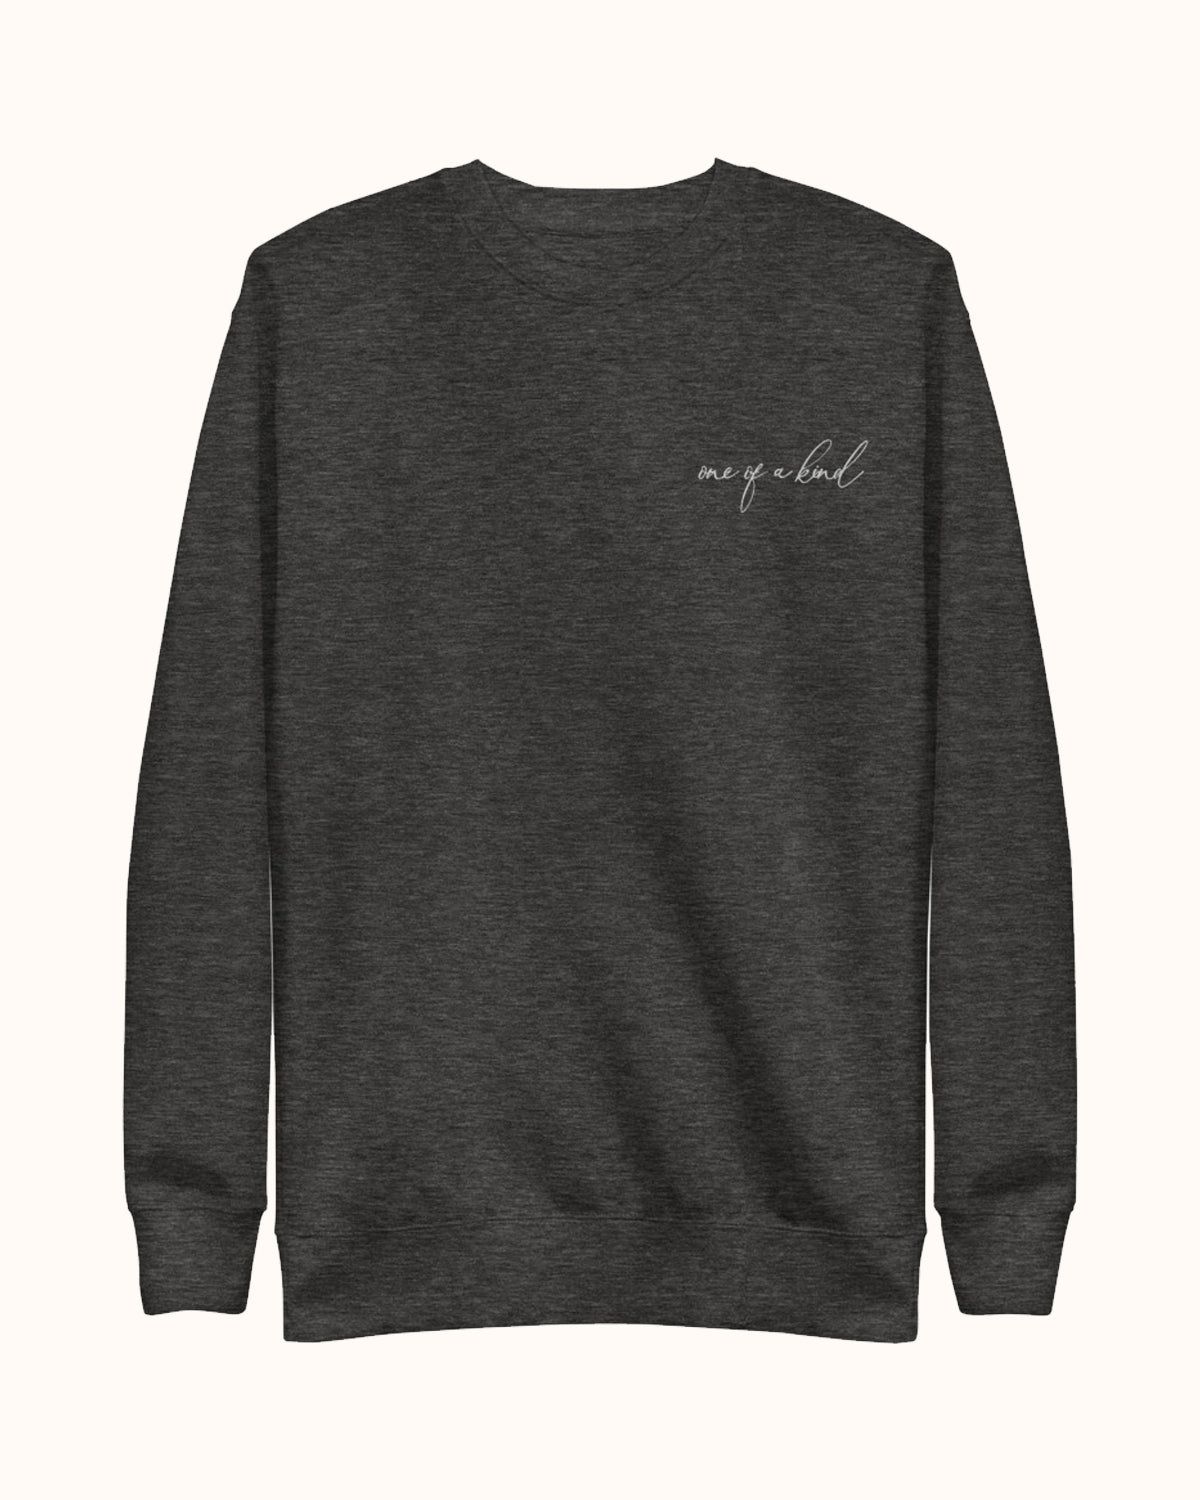 Dark grey, One of a Kind design pullover sweatshirt with fleece lining.